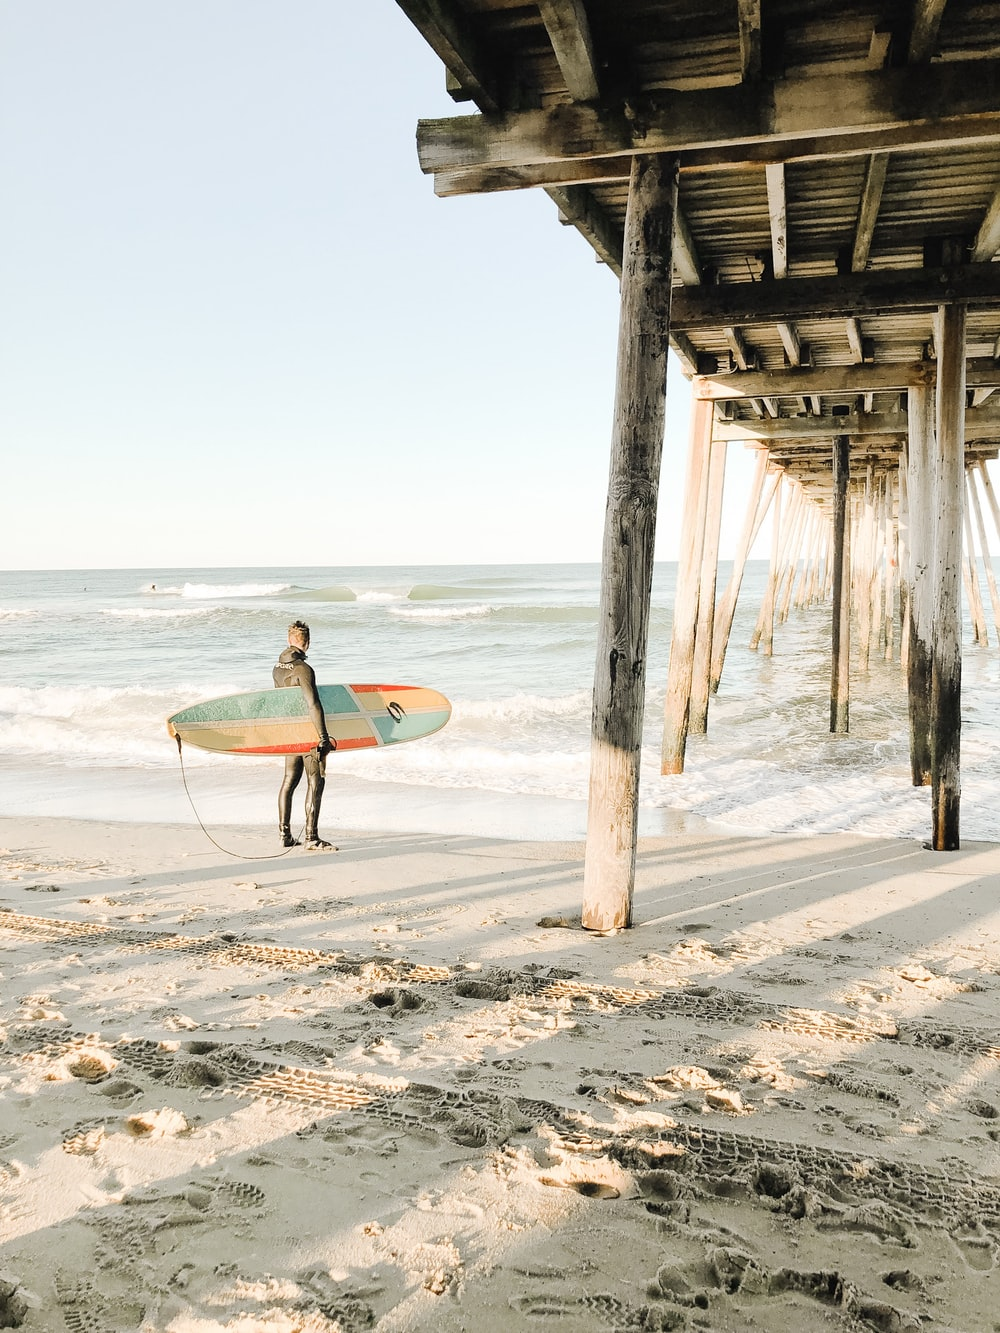 person holding surfboard while standing near brown wooden dock